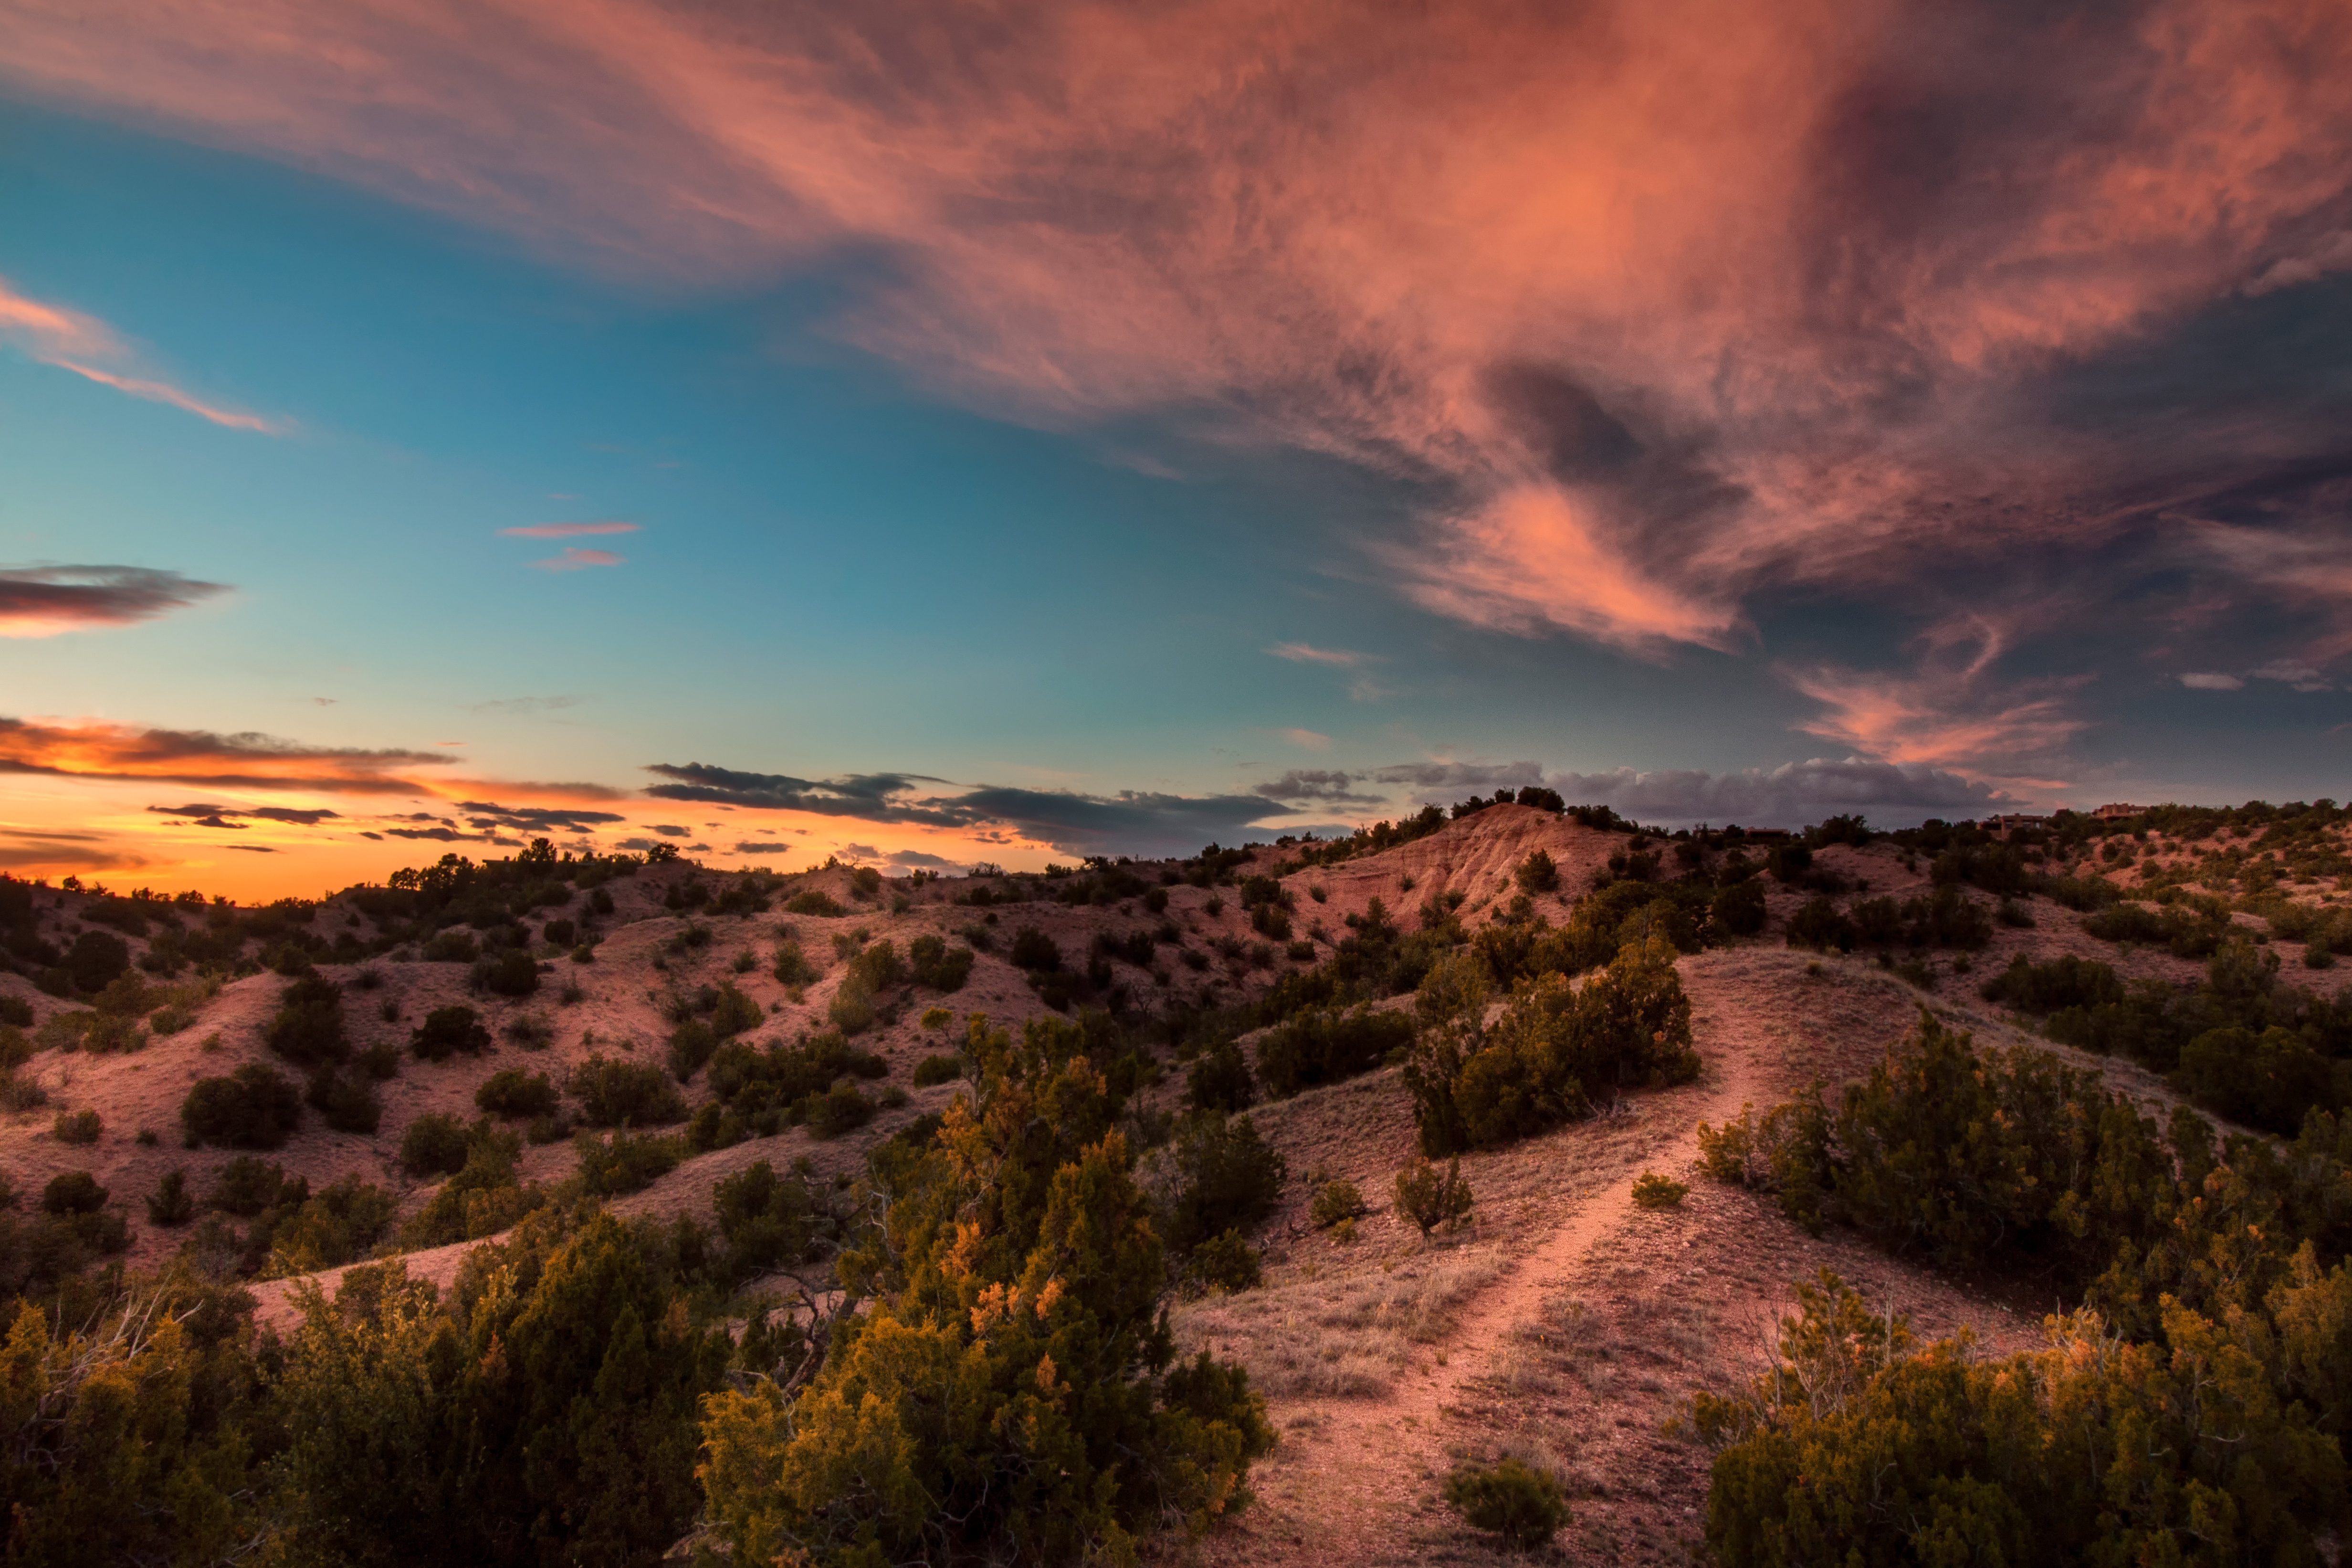 Sunset on the last night of my visit to Santa Fe. What a remarkable landscape!